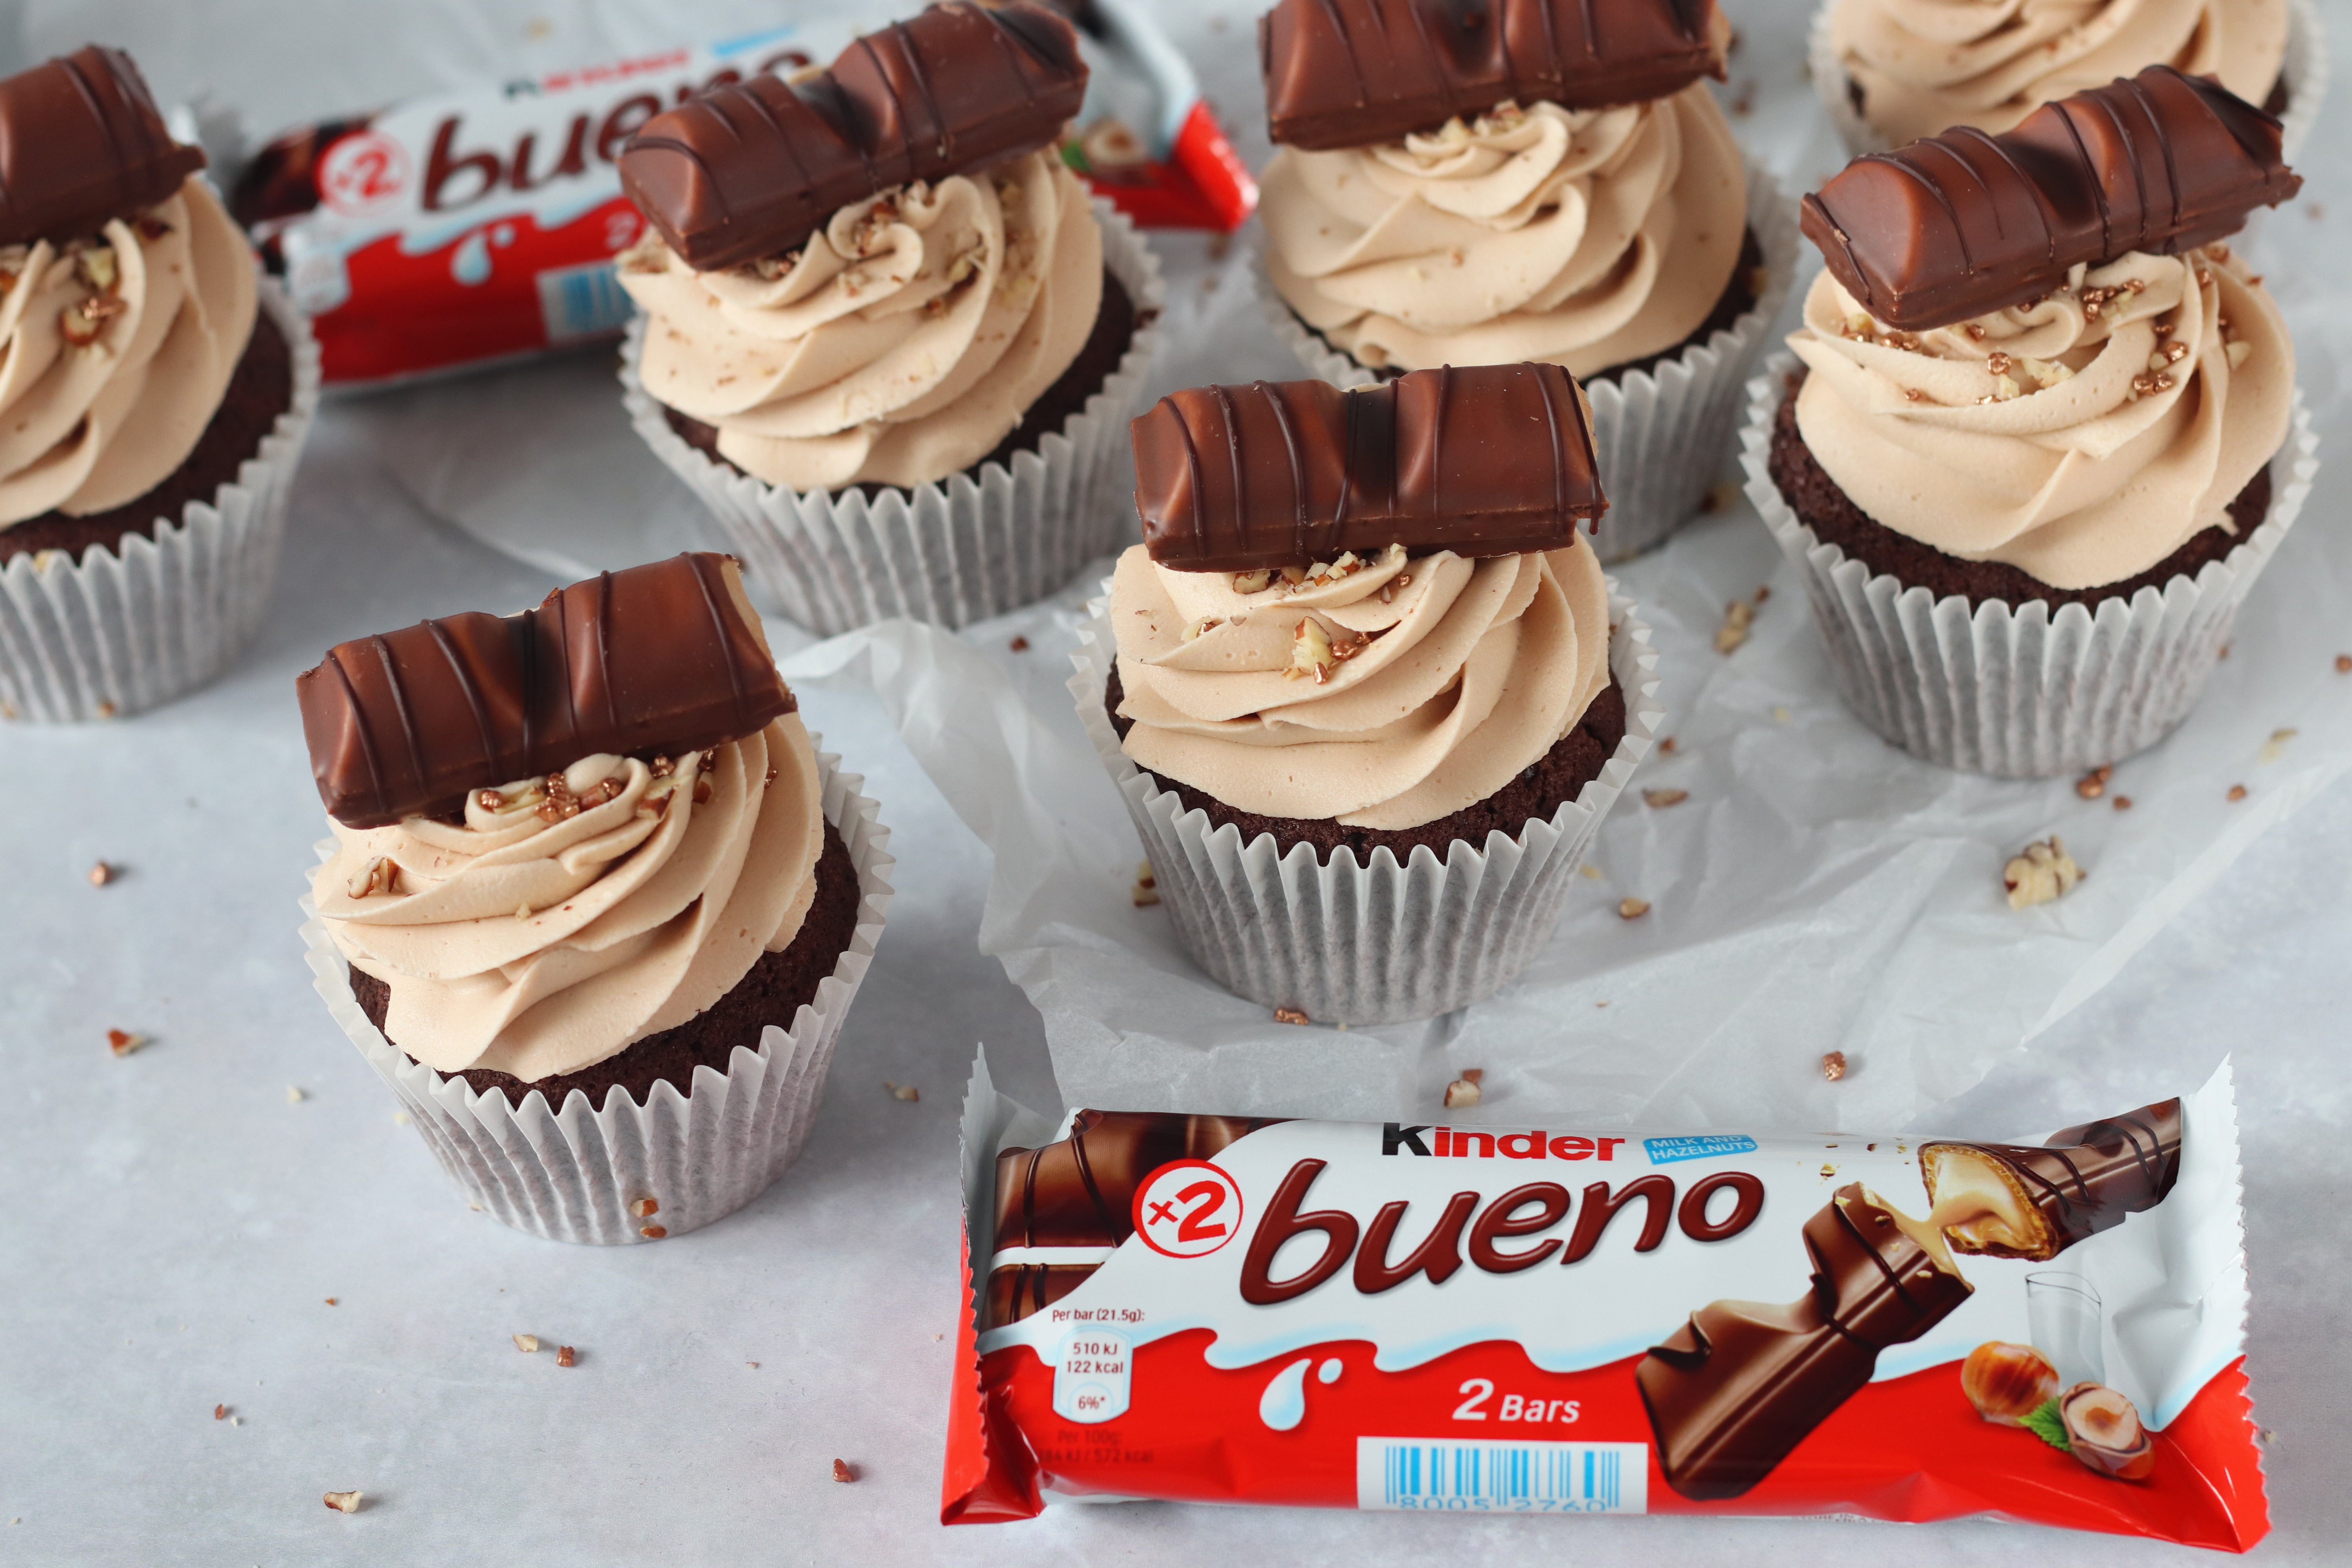 Kinder Bueno Cupcakes in row with chocolate bar